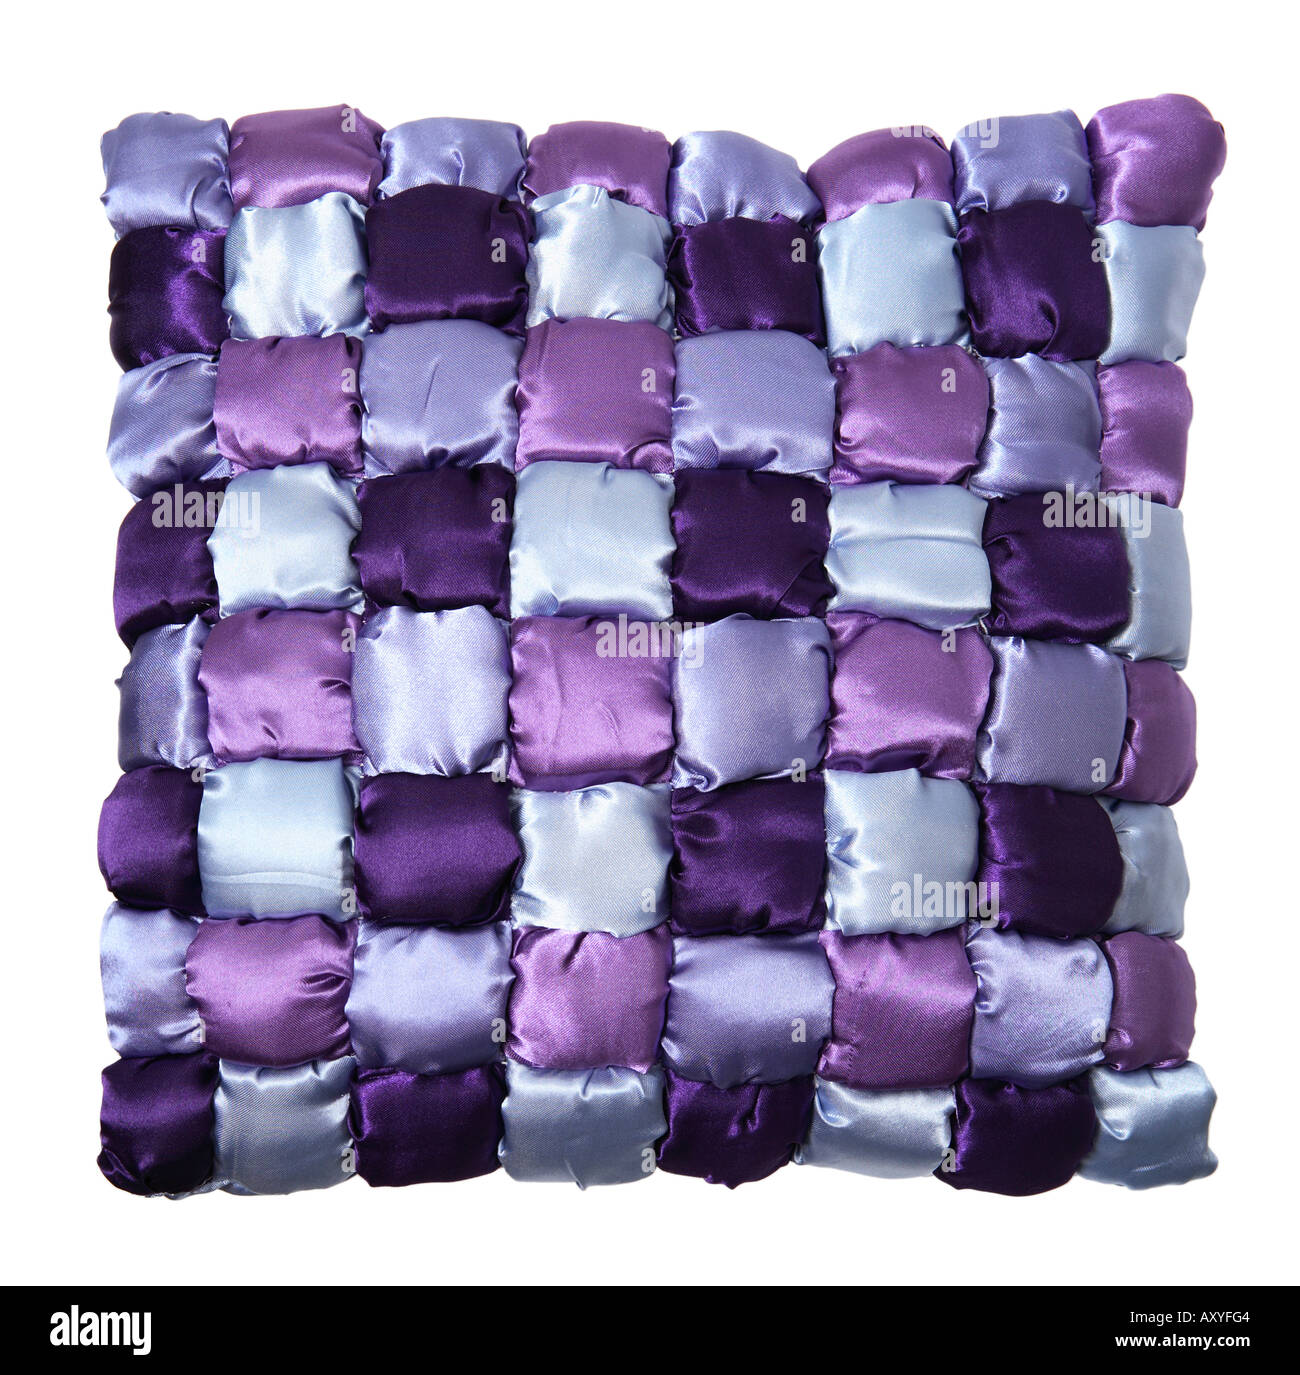 Square Pillow - Stock Image